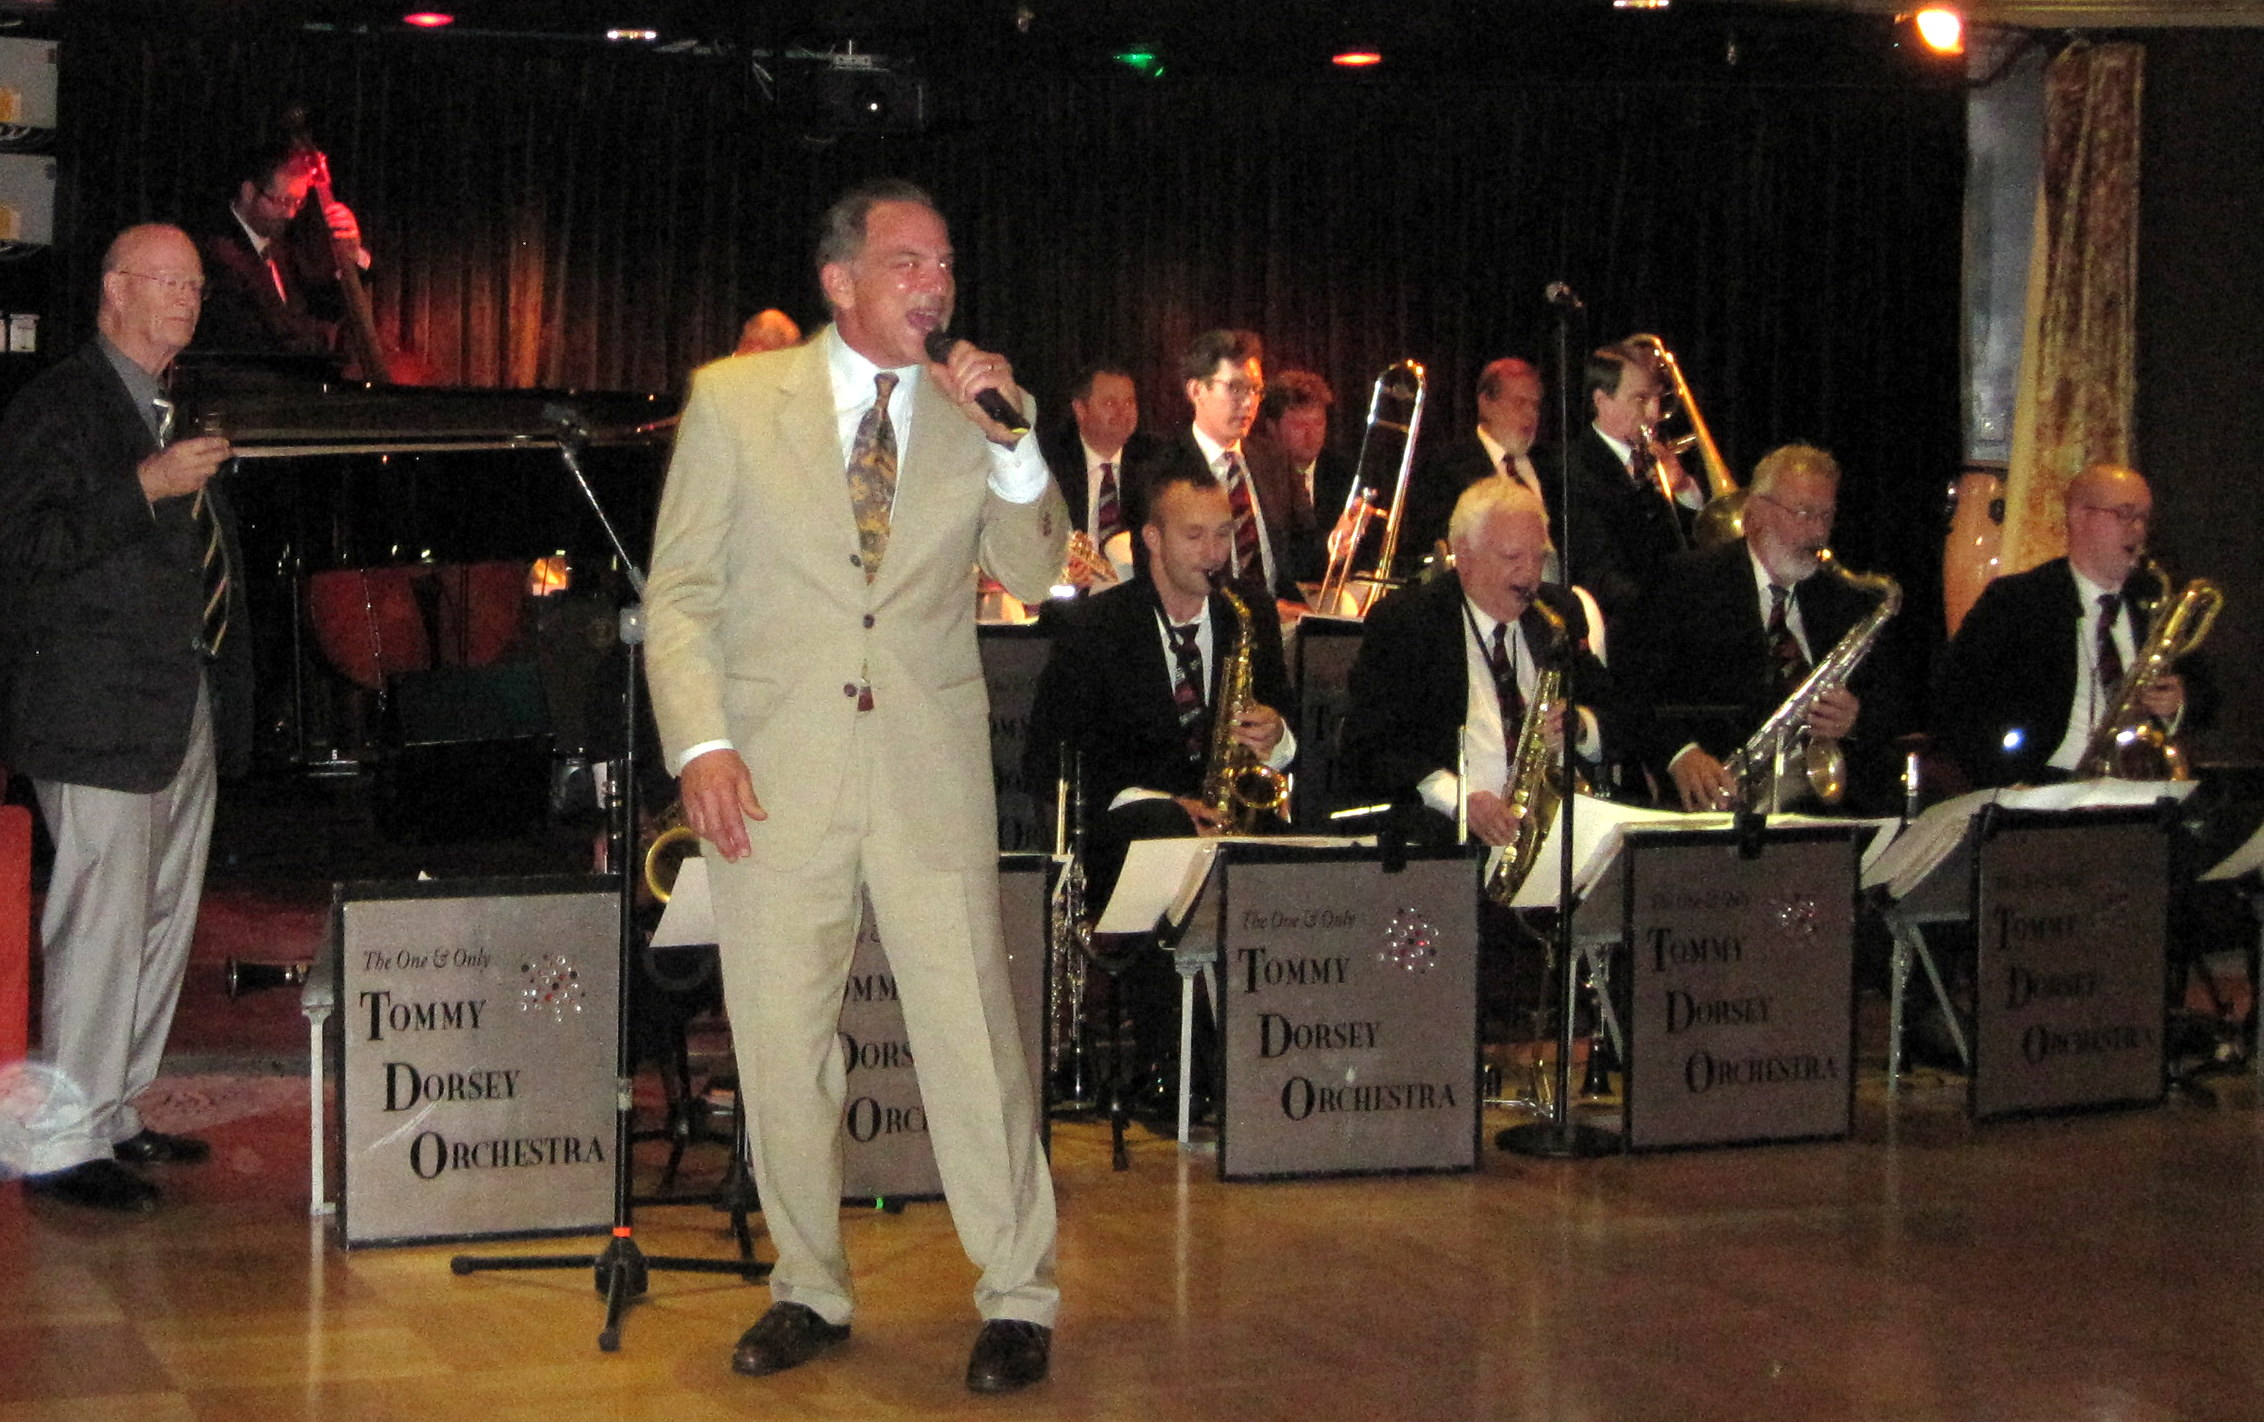 Gerard Carelli w/ Tommy Dorsey Band